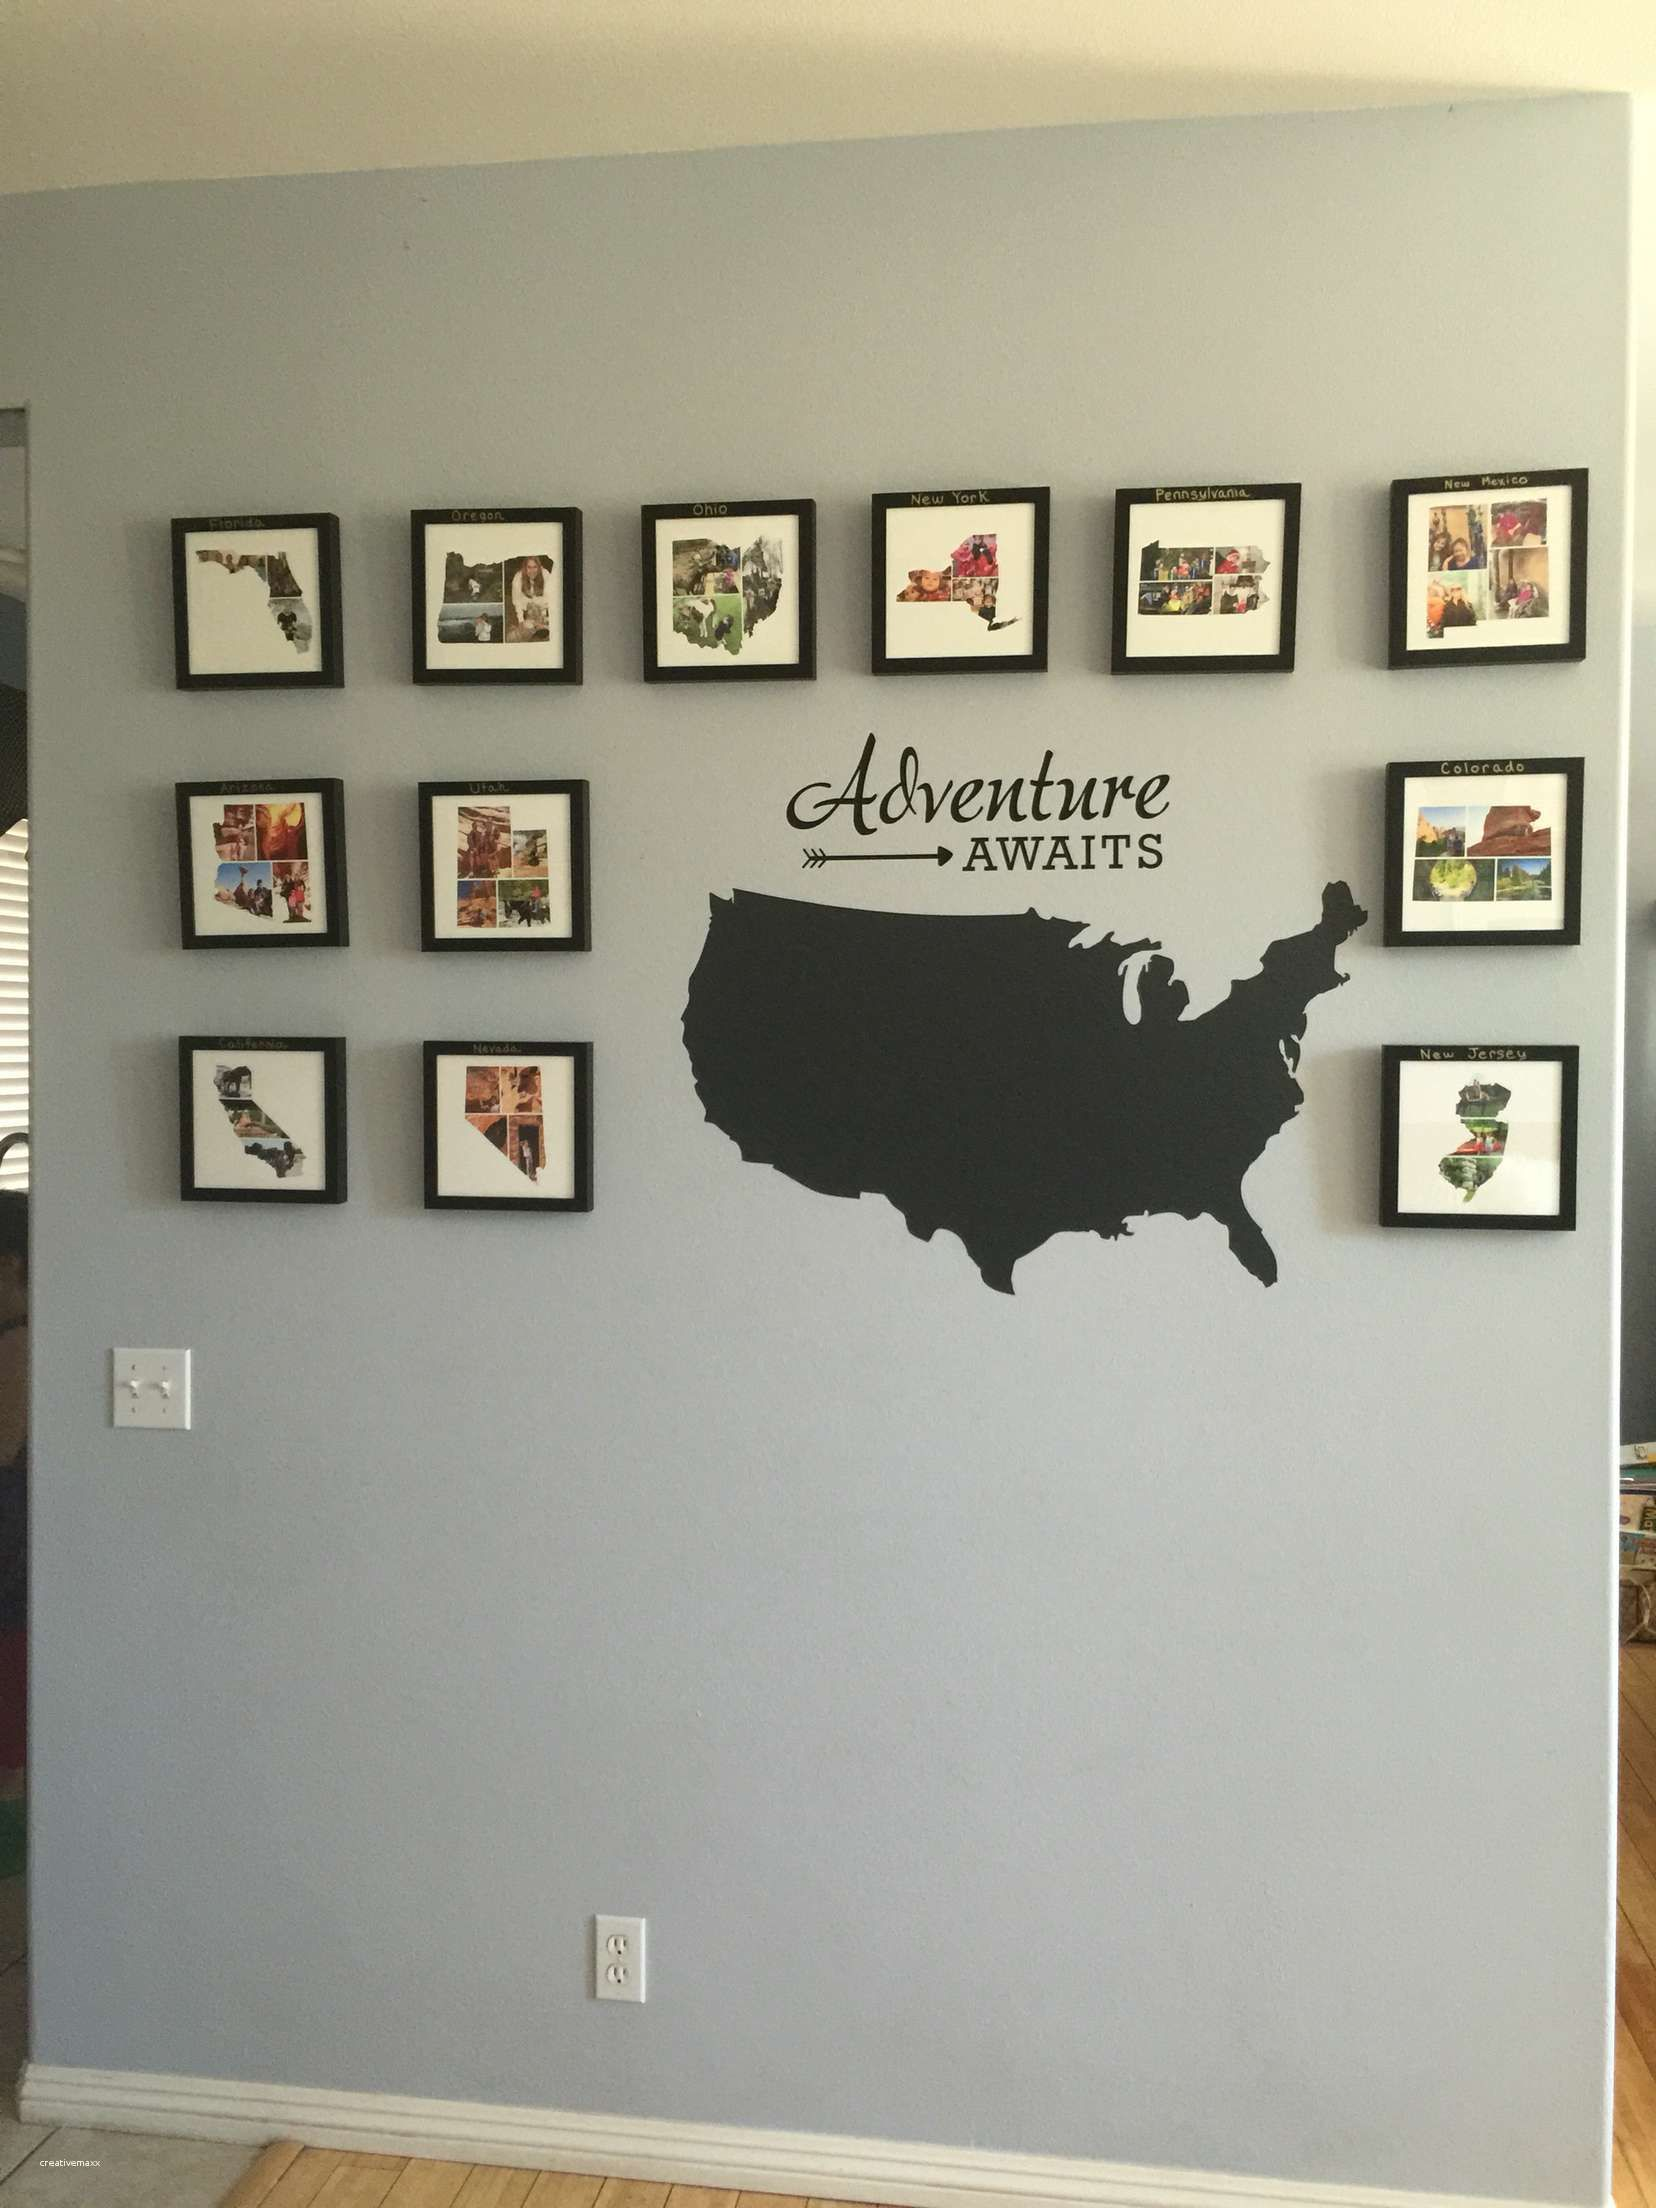 12 things that happen in travel wall ideas world maps wall ideas travel wall ideas world maps best of travel wall ideas world maps large world map 702 canvas print zellart canvas arts gumiabroncs Image collections